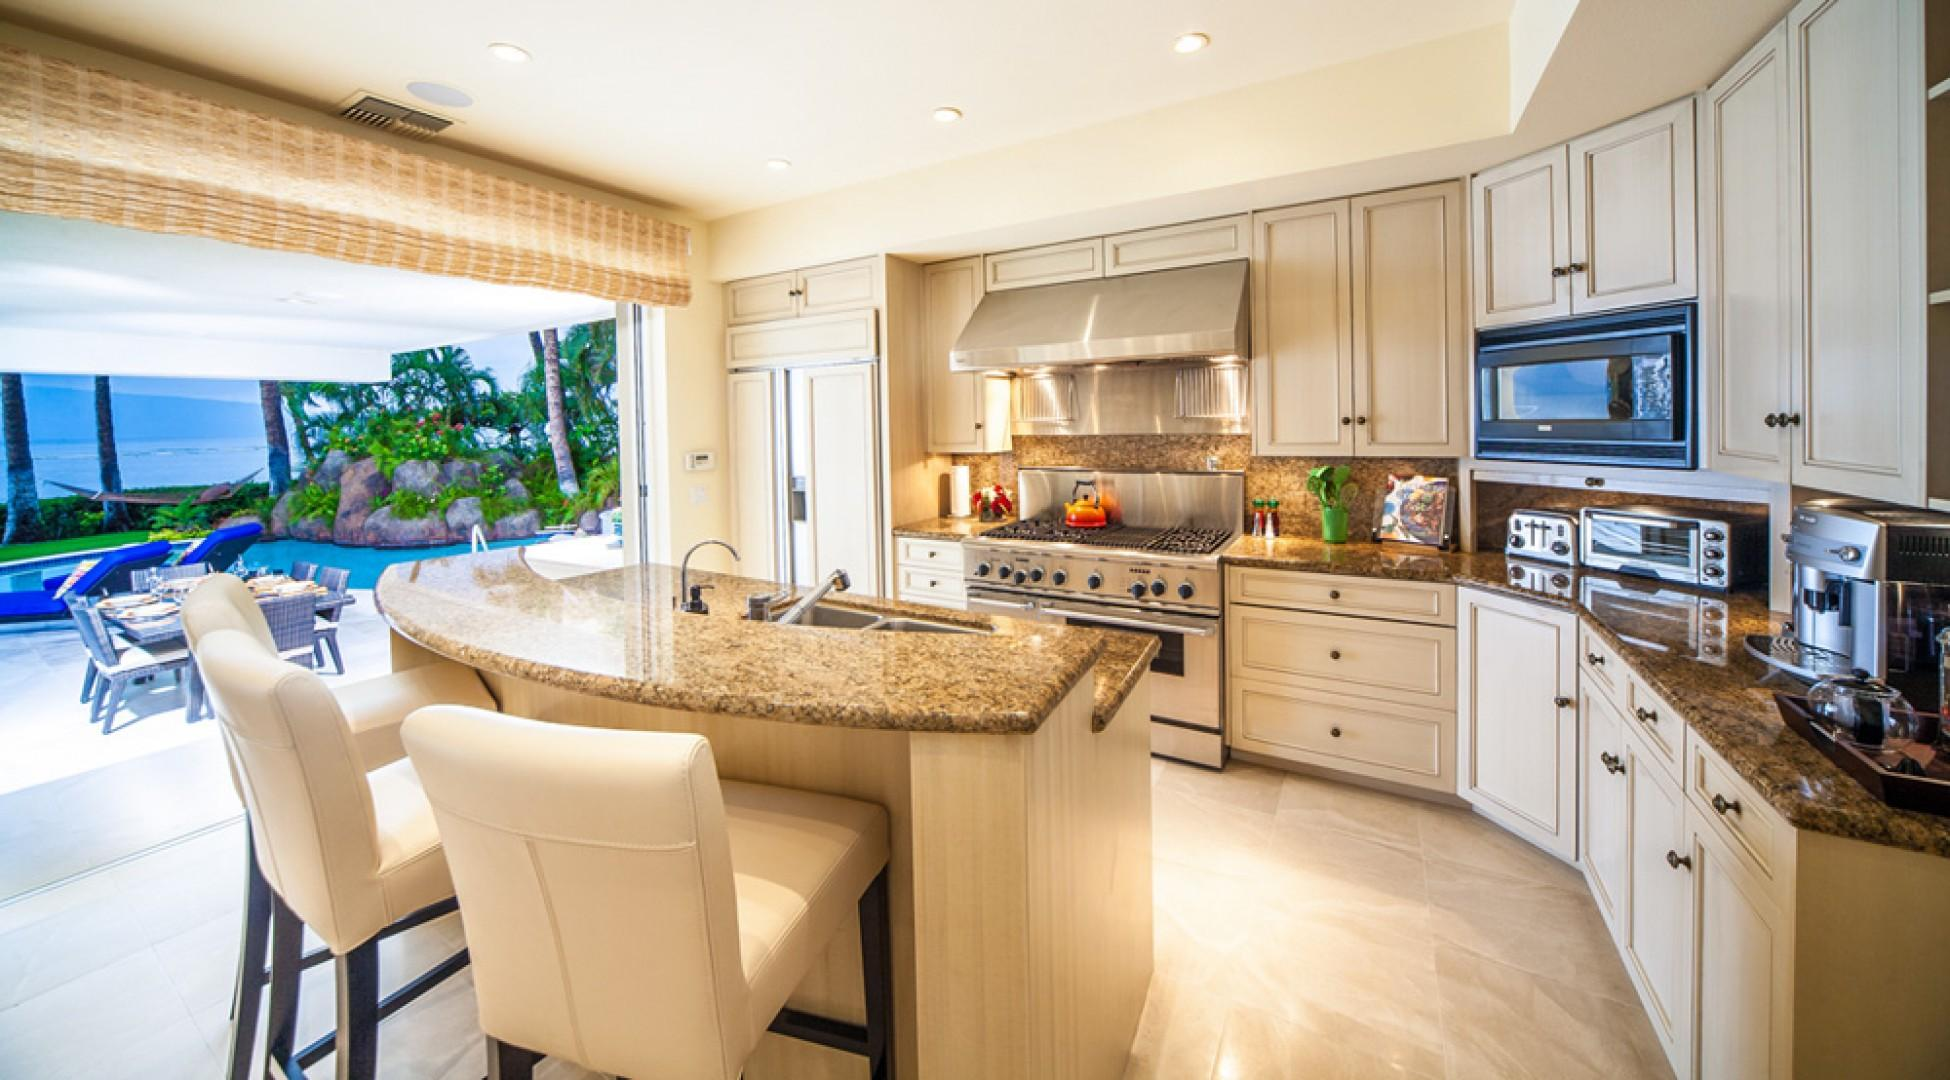 Opal Seas At Baby Beach - Poolside Kitchen with Fabulous Gas Range, Wine Fridge, Espresso Maker, Gourmet Cookware, TV, and a full array of New Supplies and Equipment. Outdoors there is an Ice Maker, Bar Fridge, and Gas BBQ Grill.